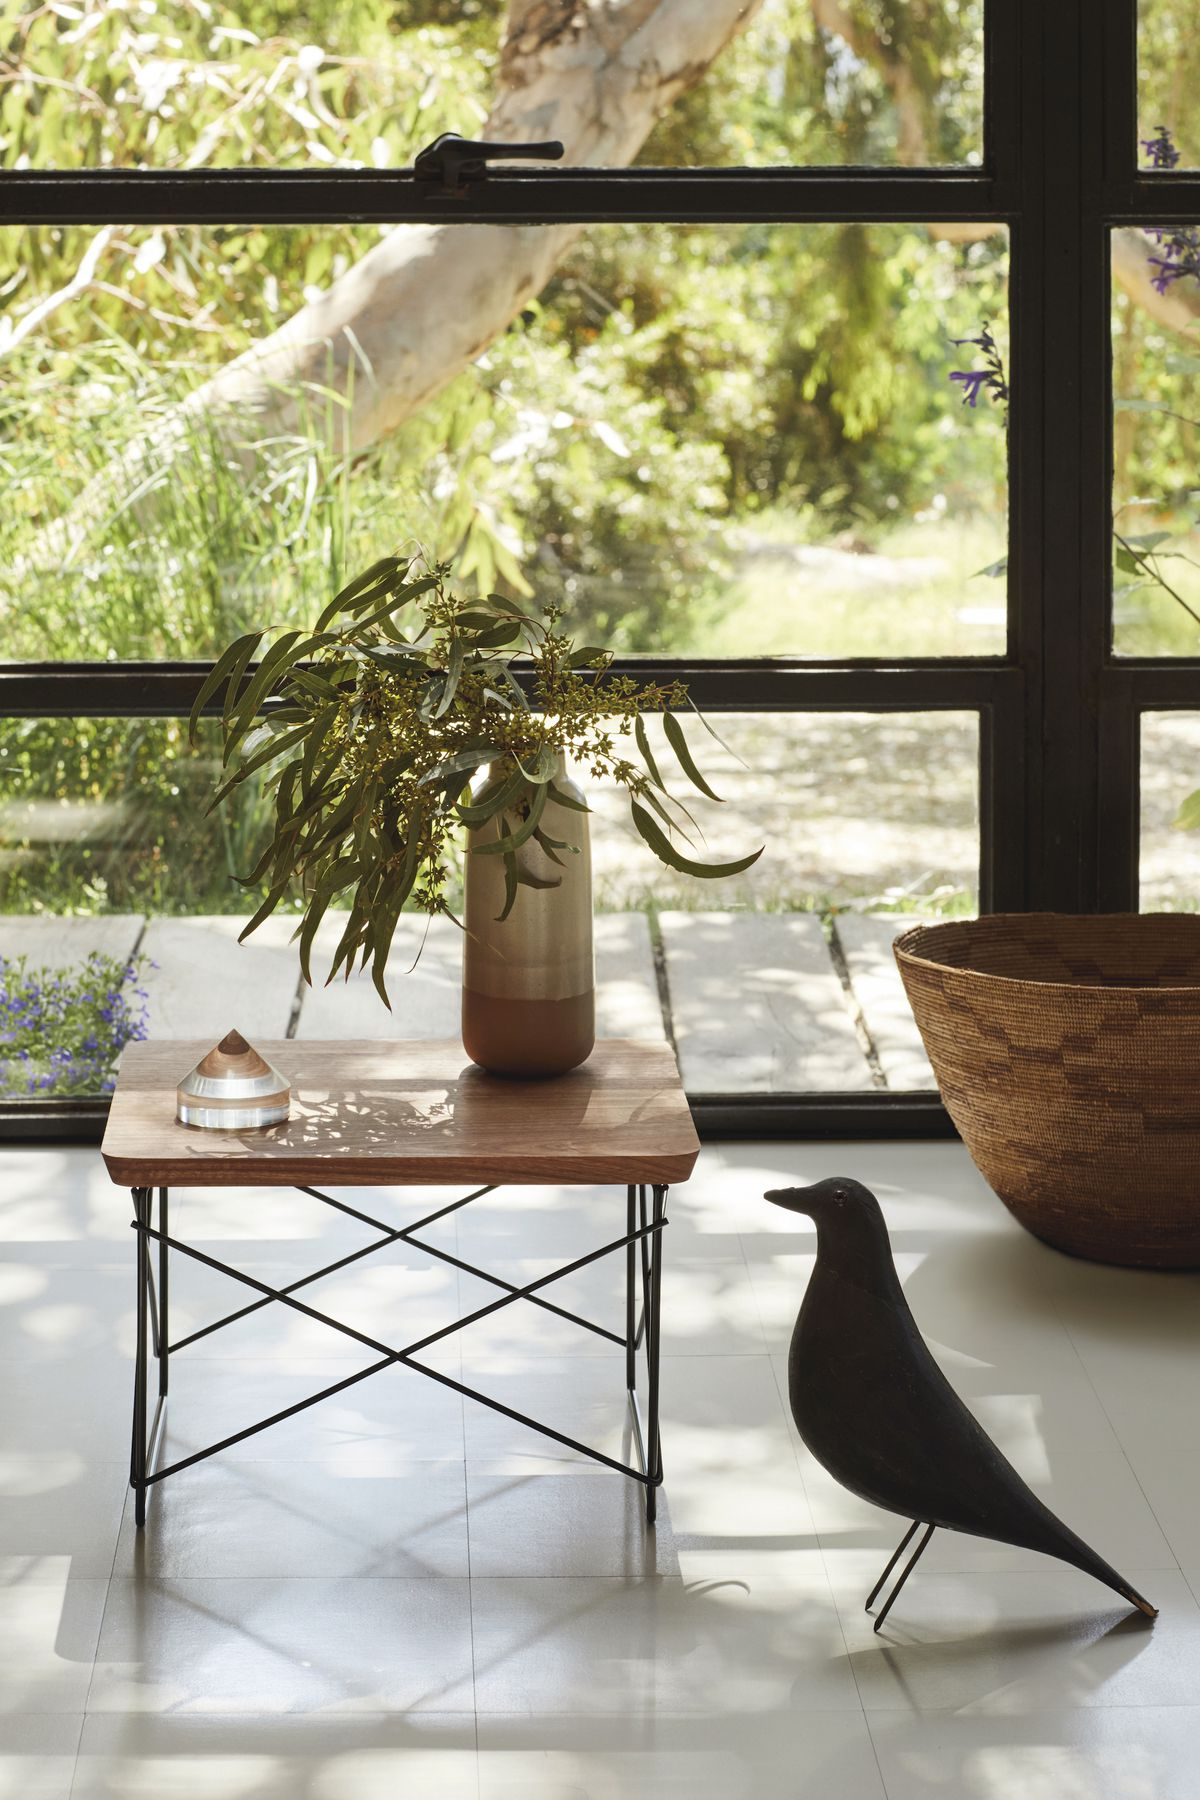 A small table with wire frame base and wooden top holds a plant on top.